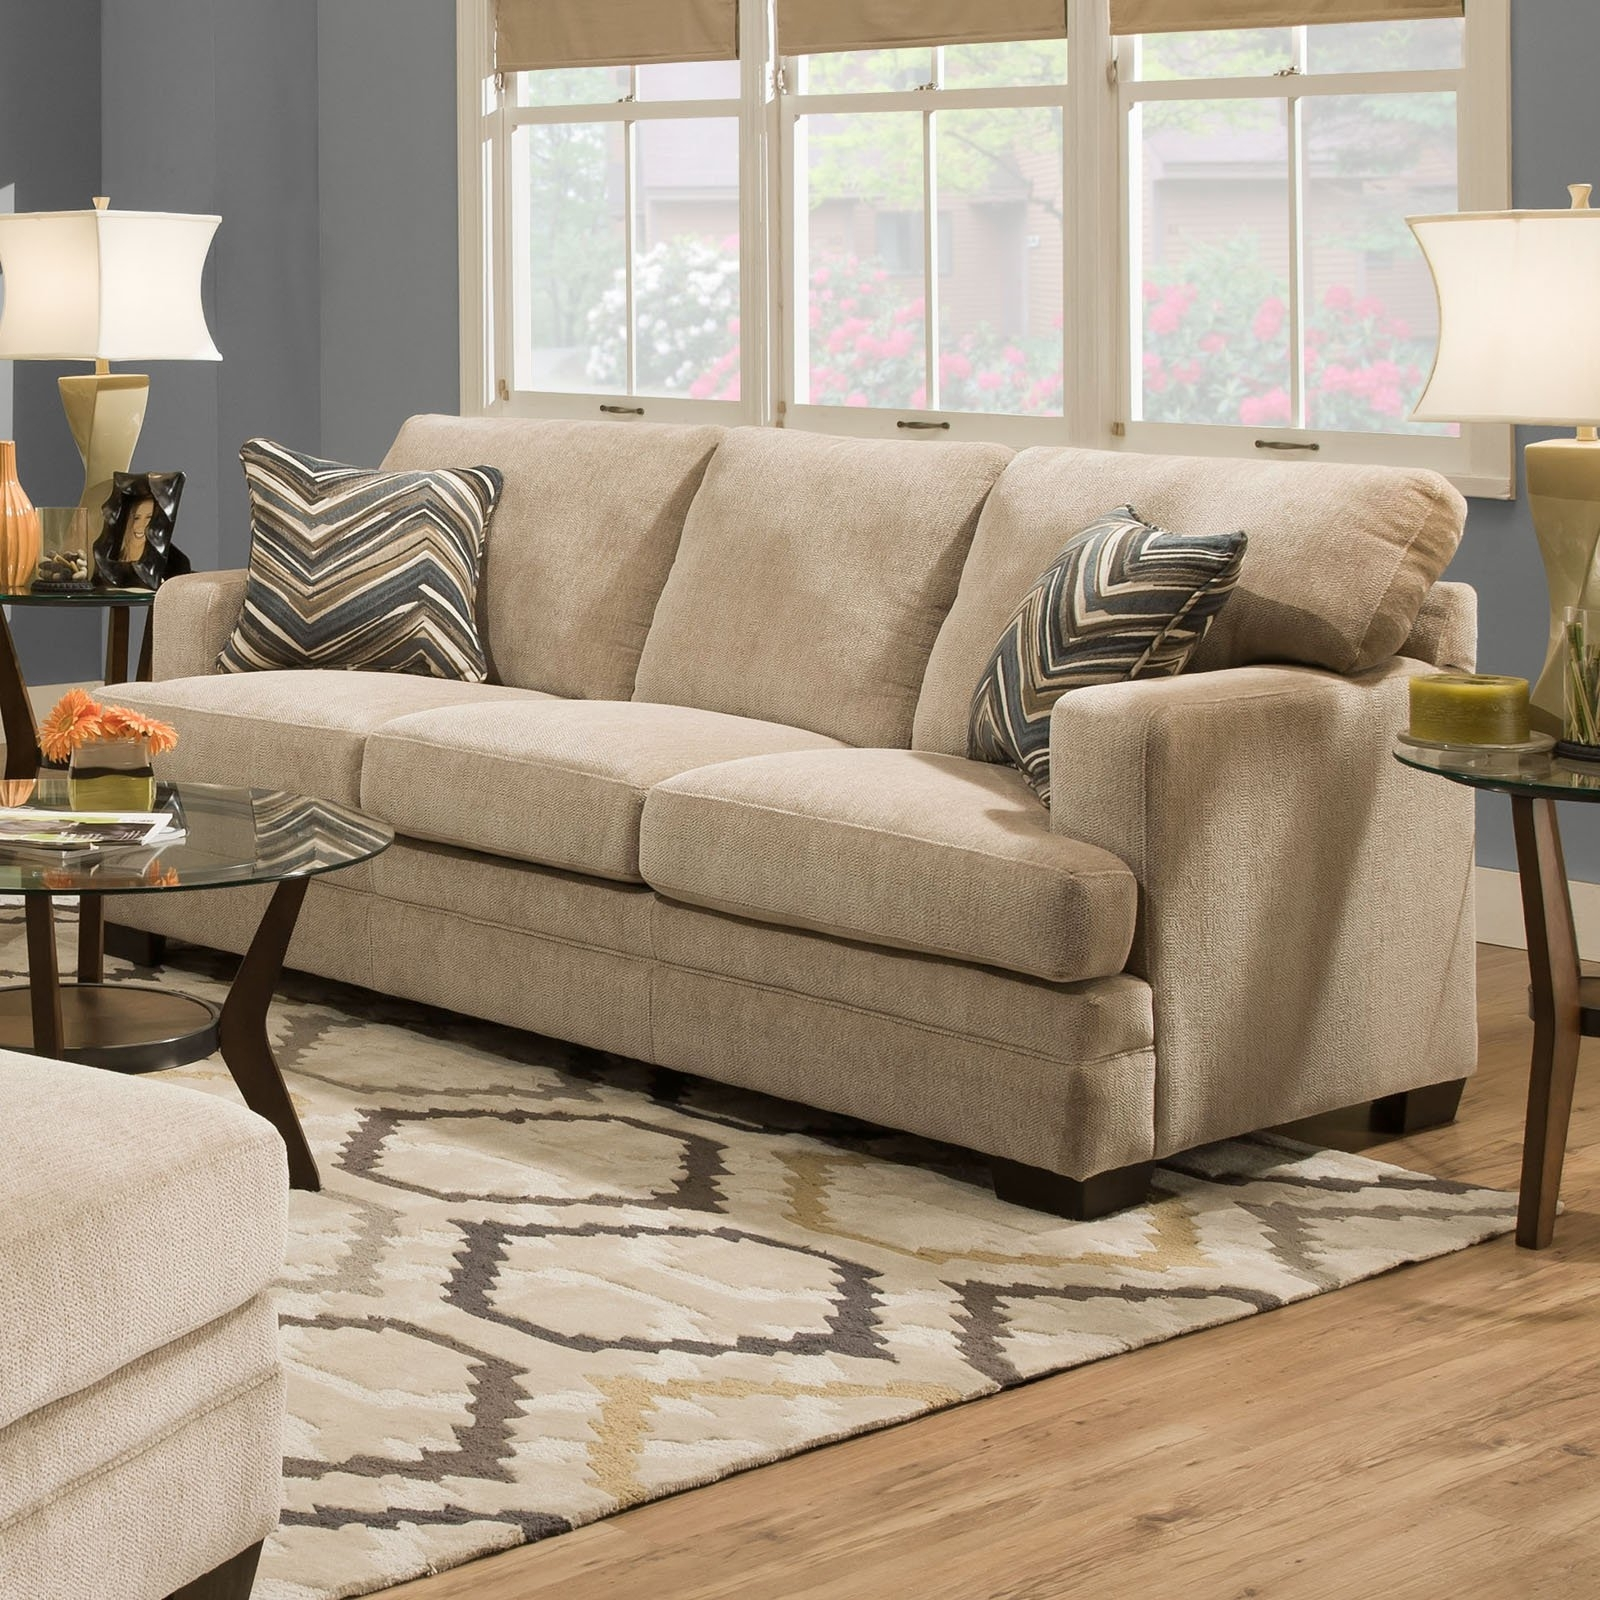 Simmons Upholstery Sassy Sofa – Barley – Walmart With Regard To 2019 Simmons Chaise Sofas (View 6 of 20)